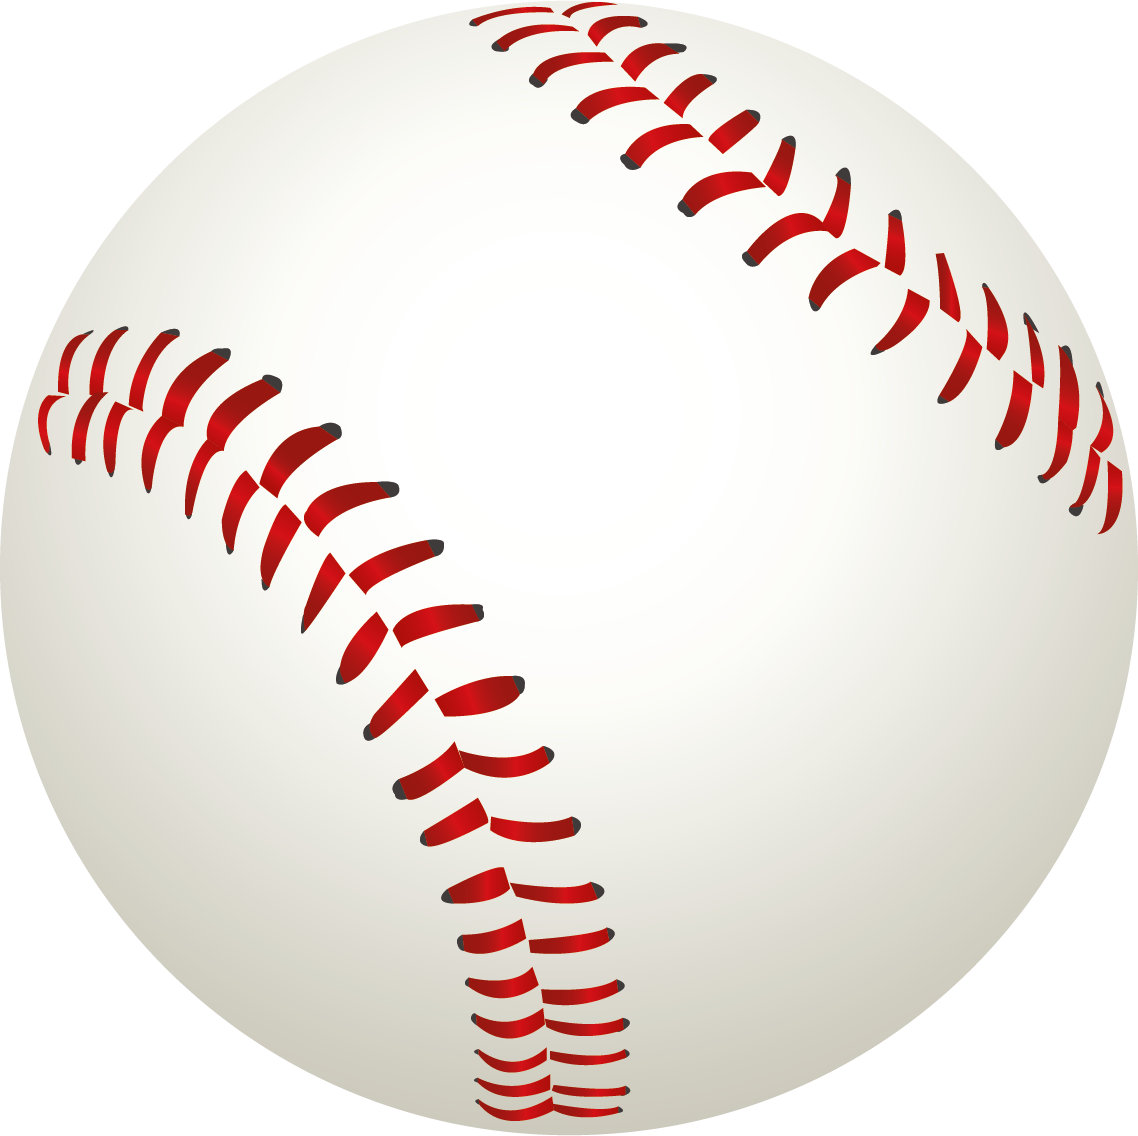 Ball . Baseball stitching clipart